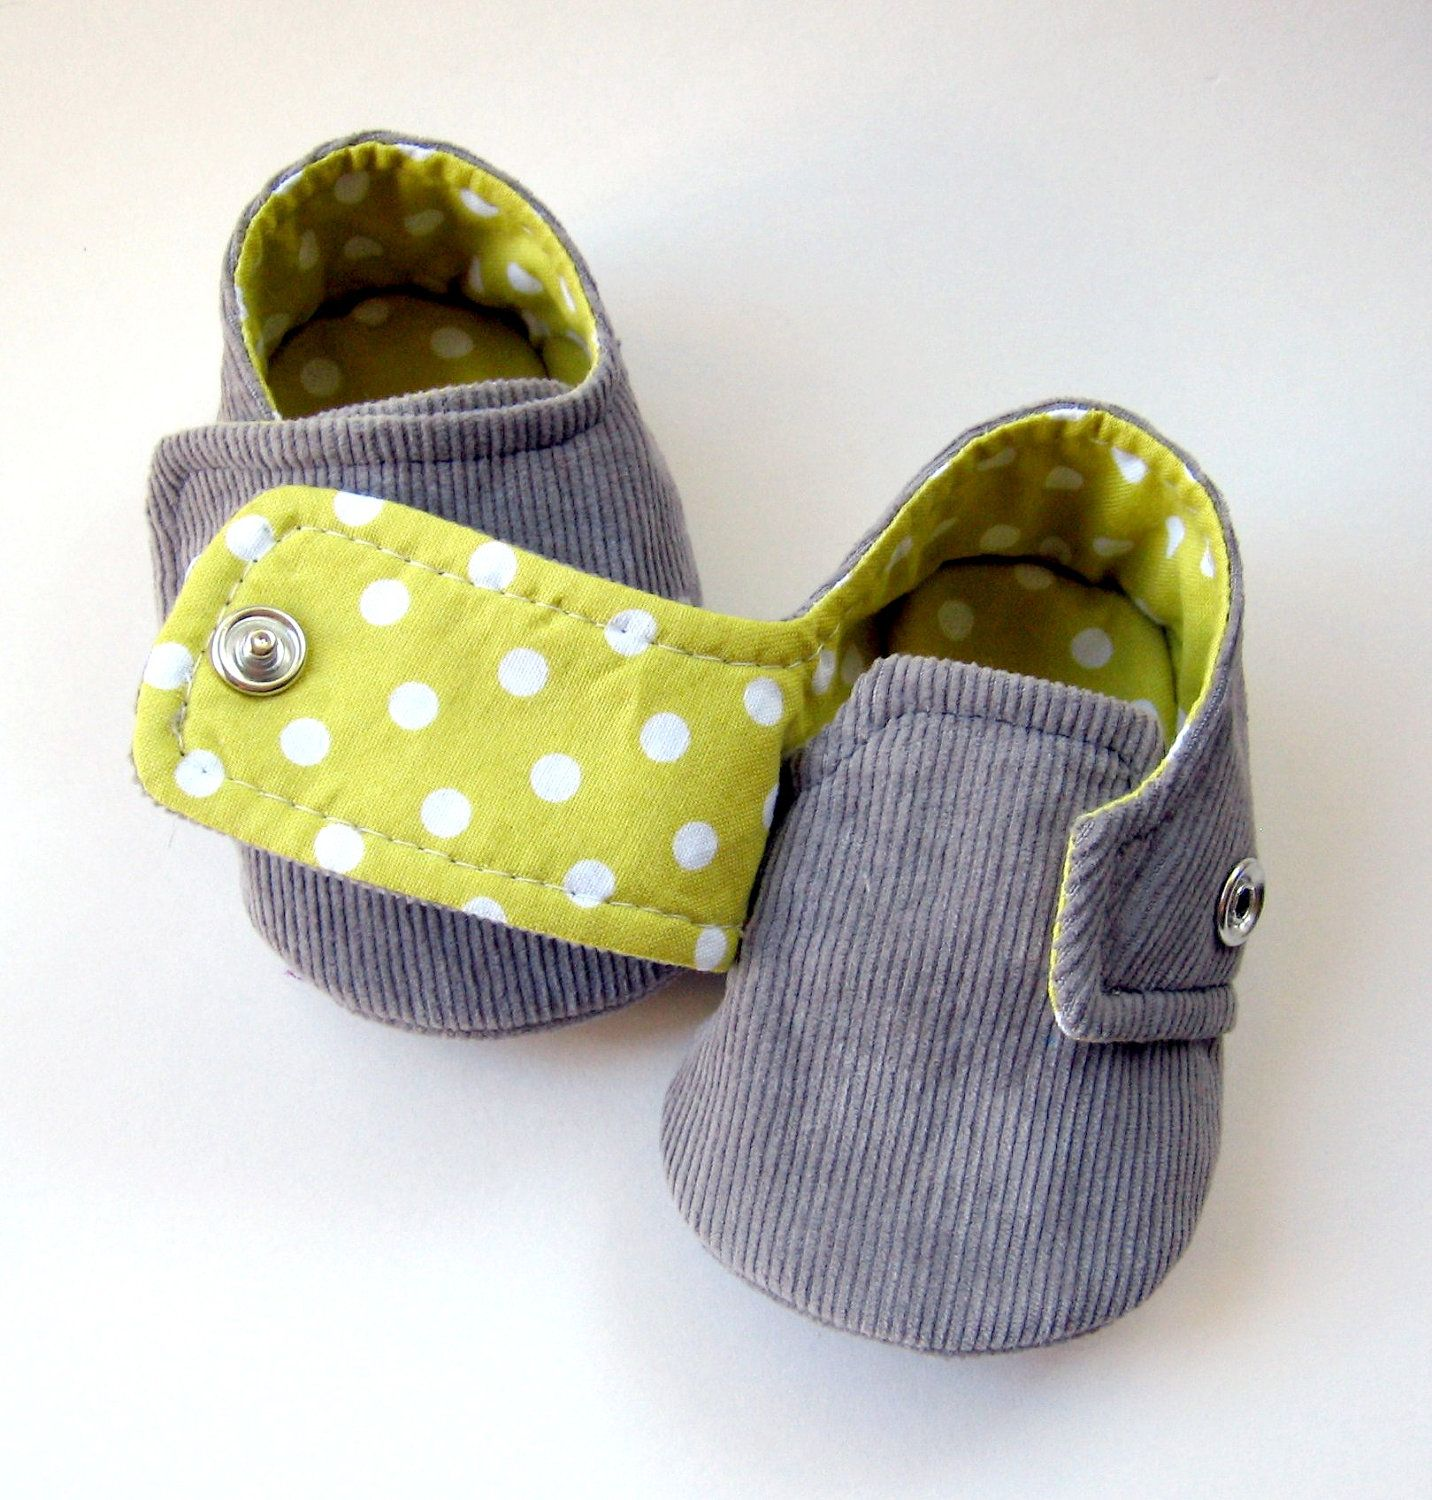 Baby Booties in Gray Corduroy and Yellow  Polka-Dot Cotton - Sizes 1-4. $26.00, via Etsy.